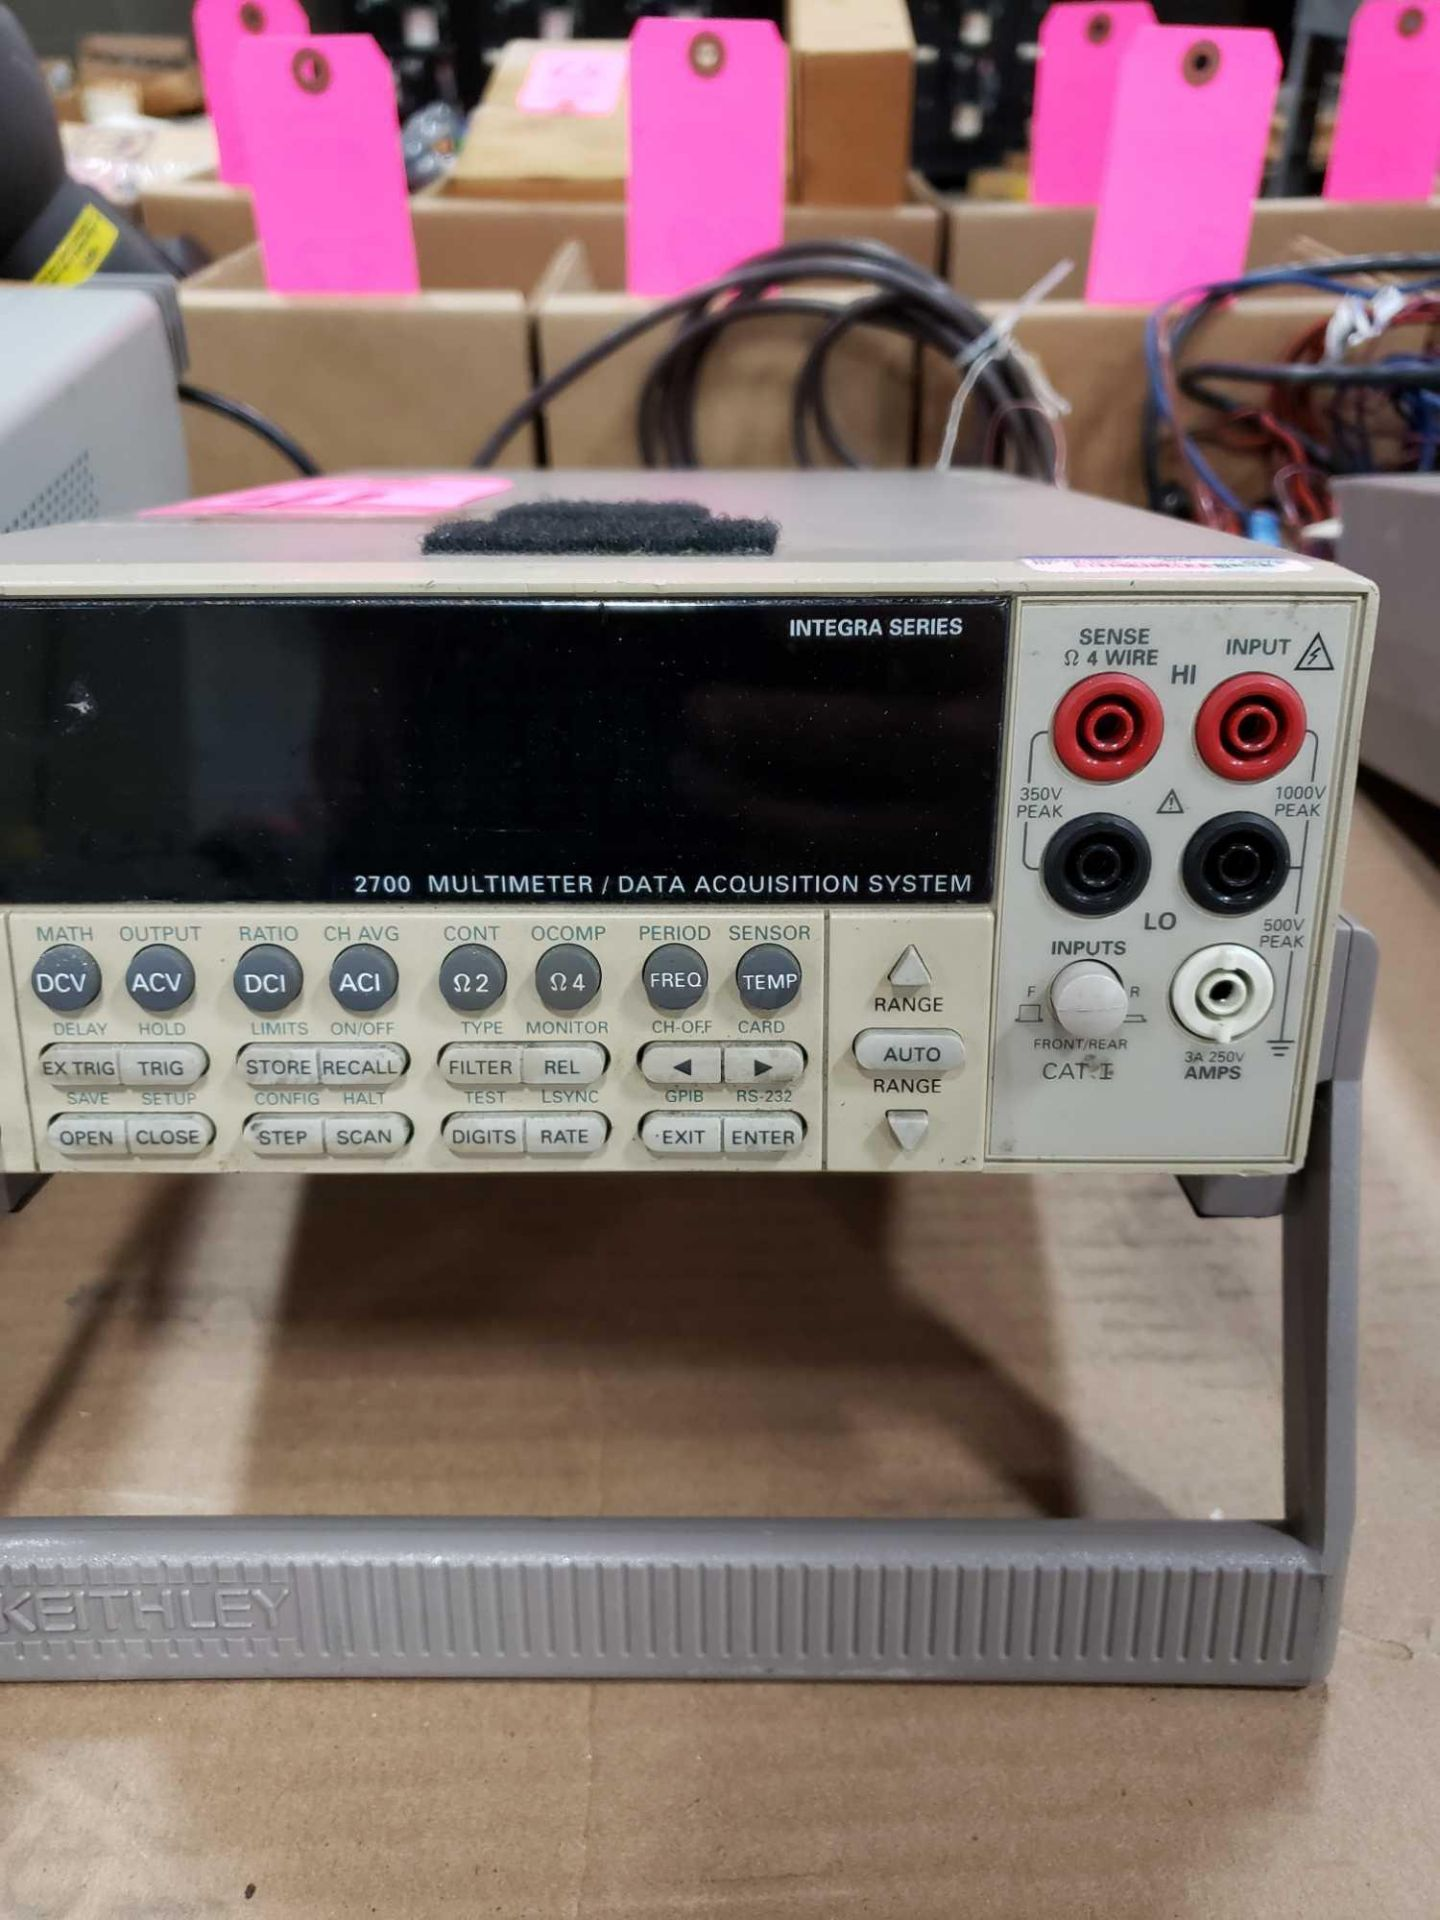 Lot 41 - Kiethley 2700 multimeter data acquisition system with 7706 all in one module.